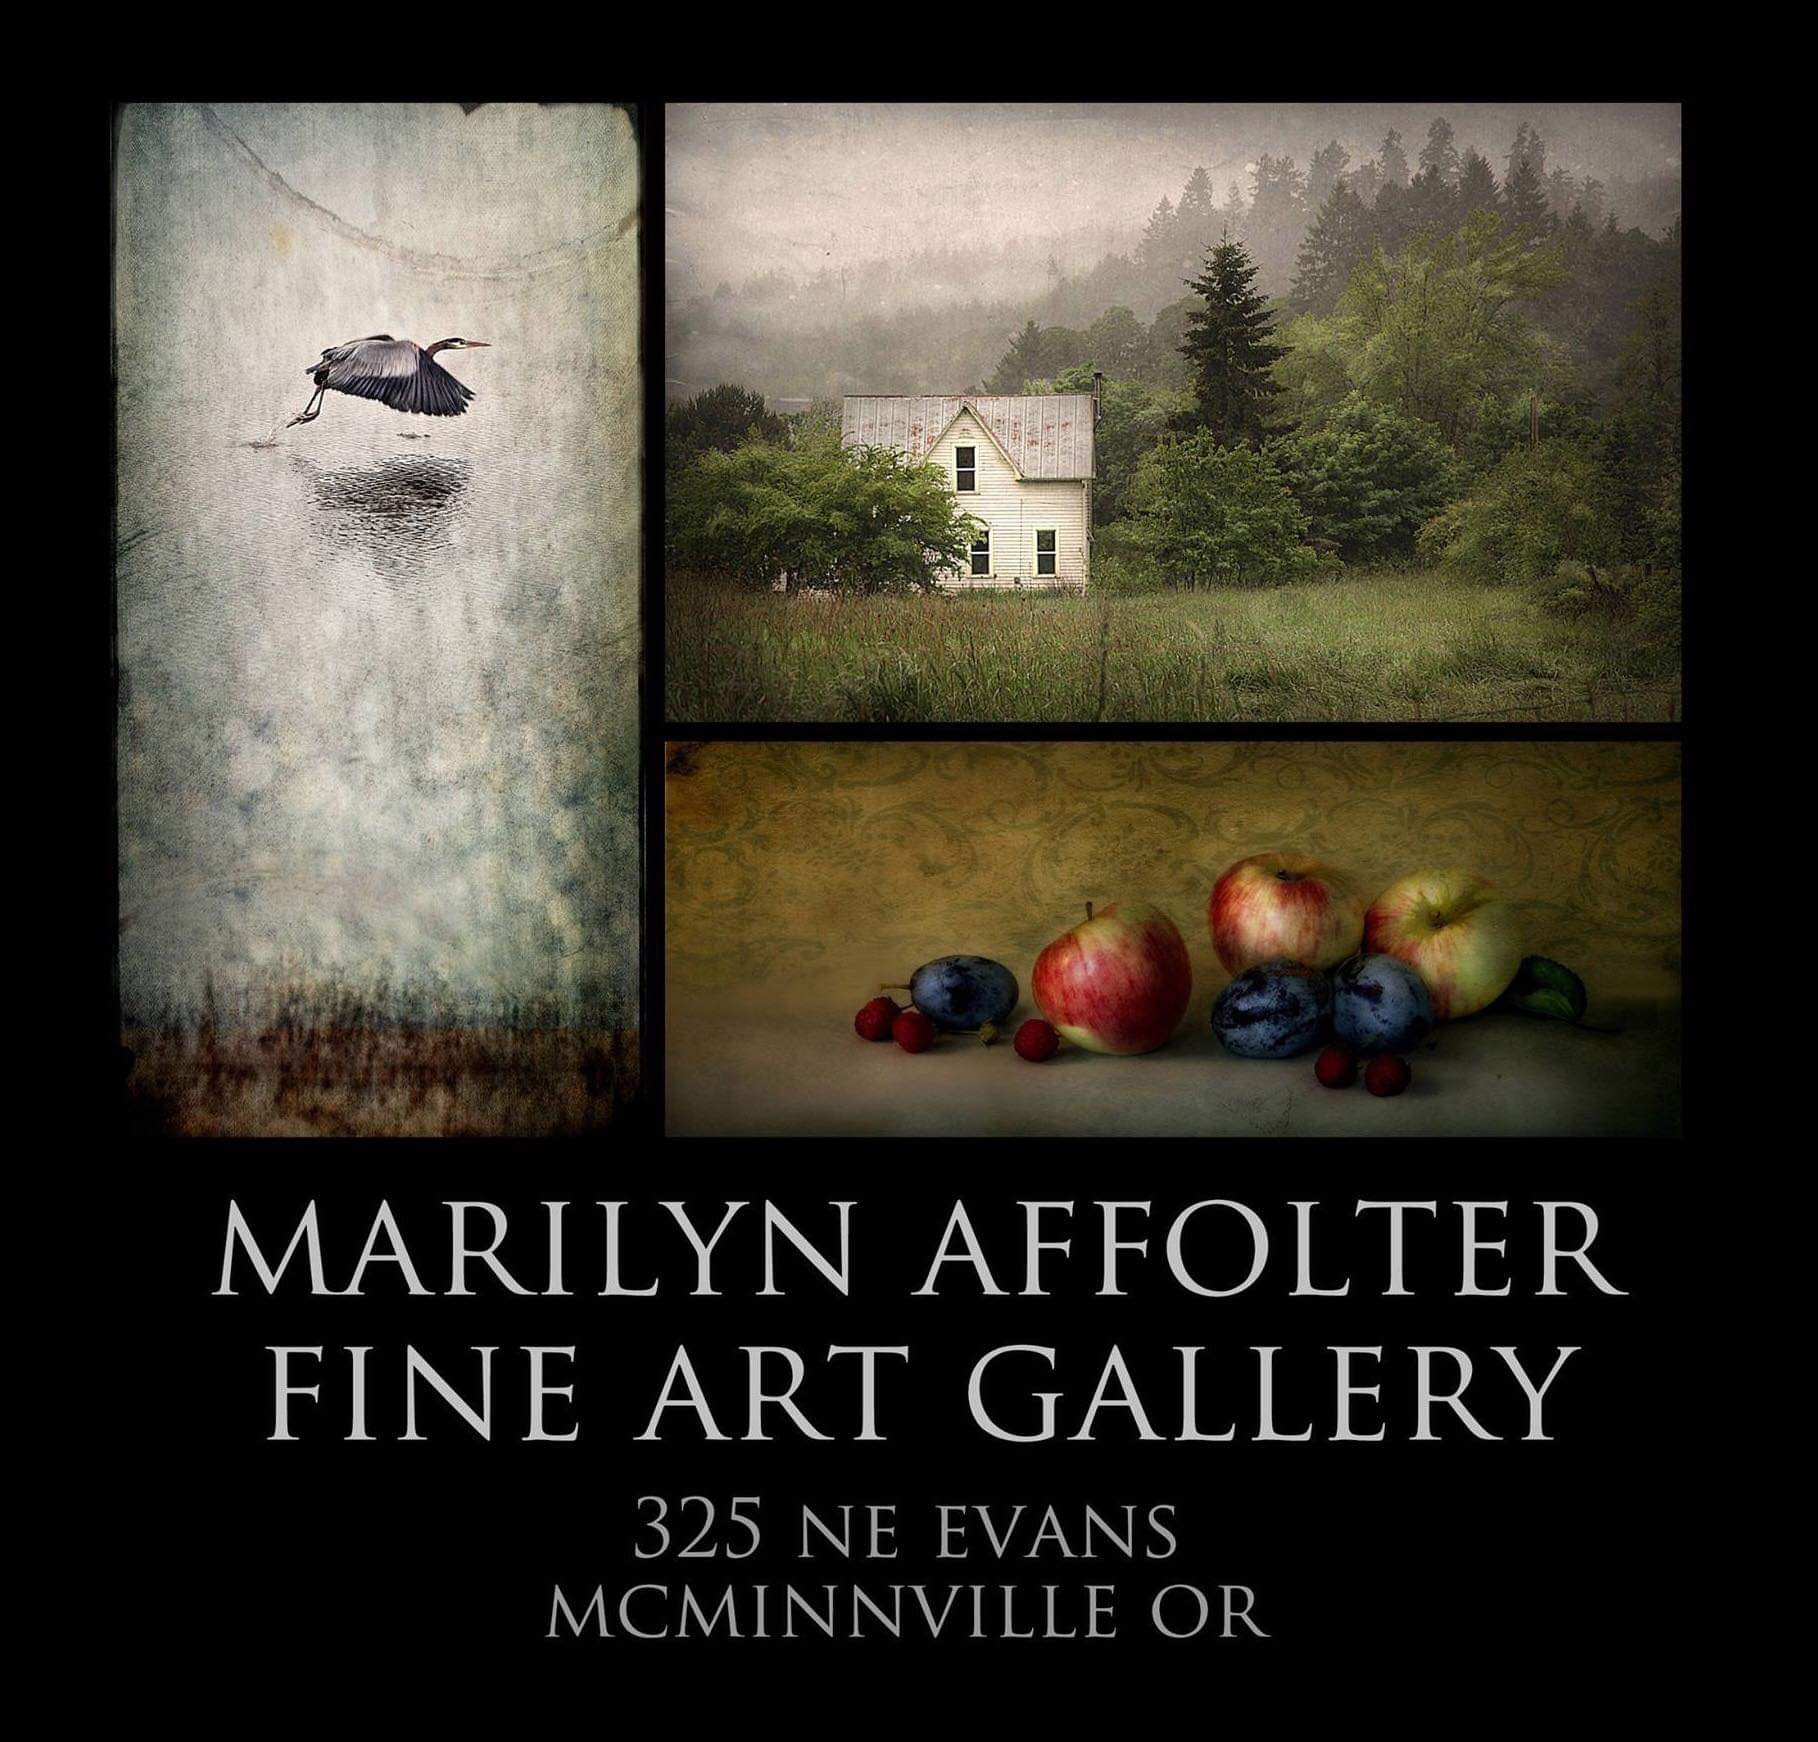 Marilyn Affolter Fine Art Studio McMinnville Oregon